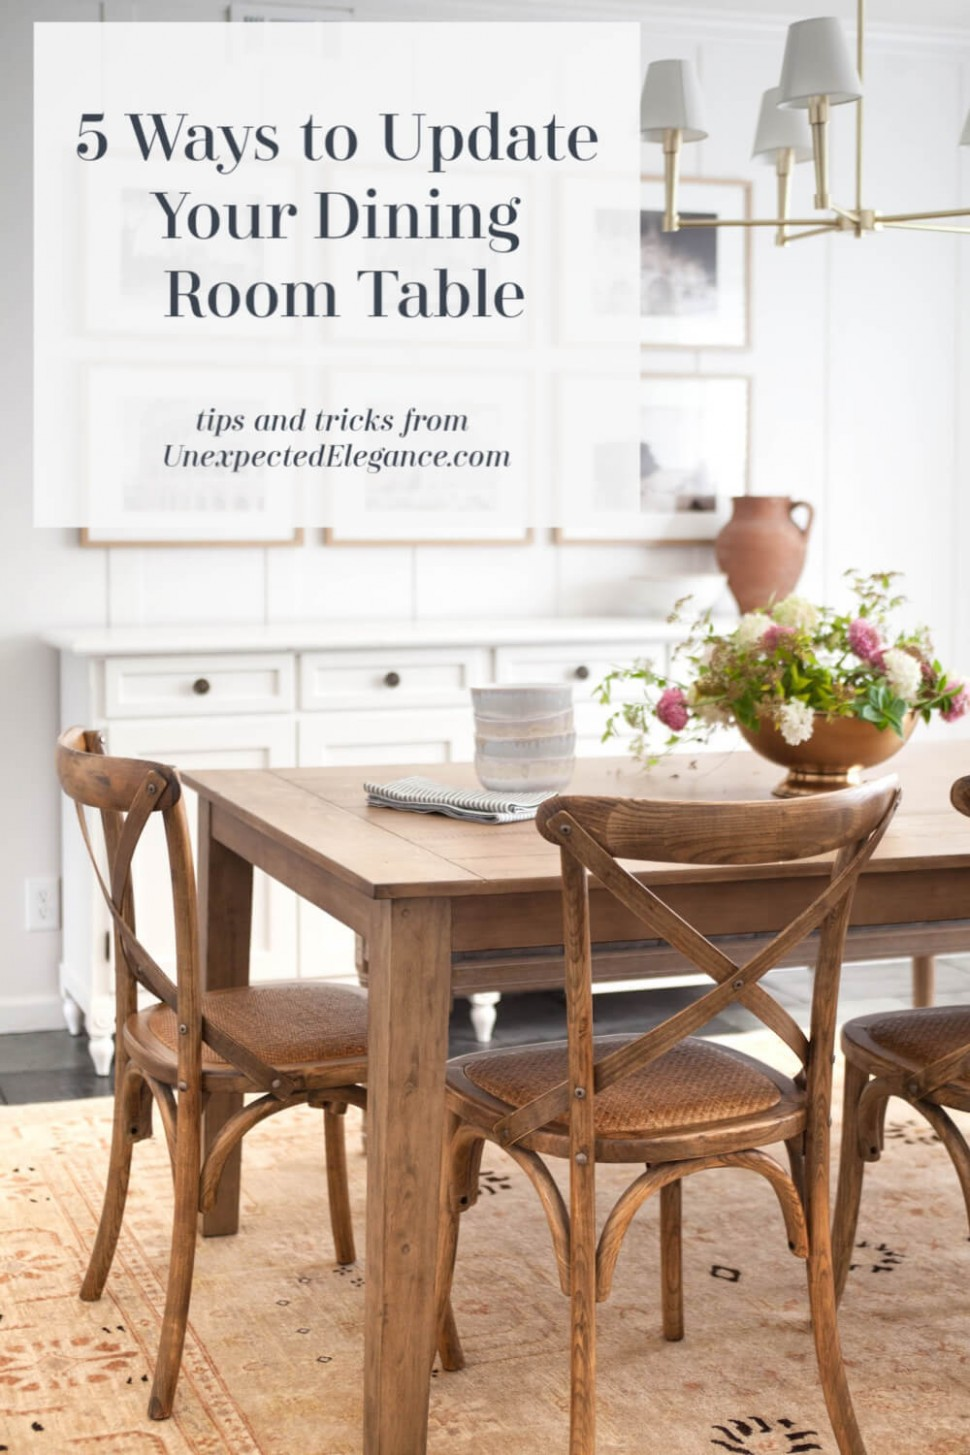 9 Ways to Update Your Dining Room Table  Unexpected Elegance - Dining Room Replacement Ideas